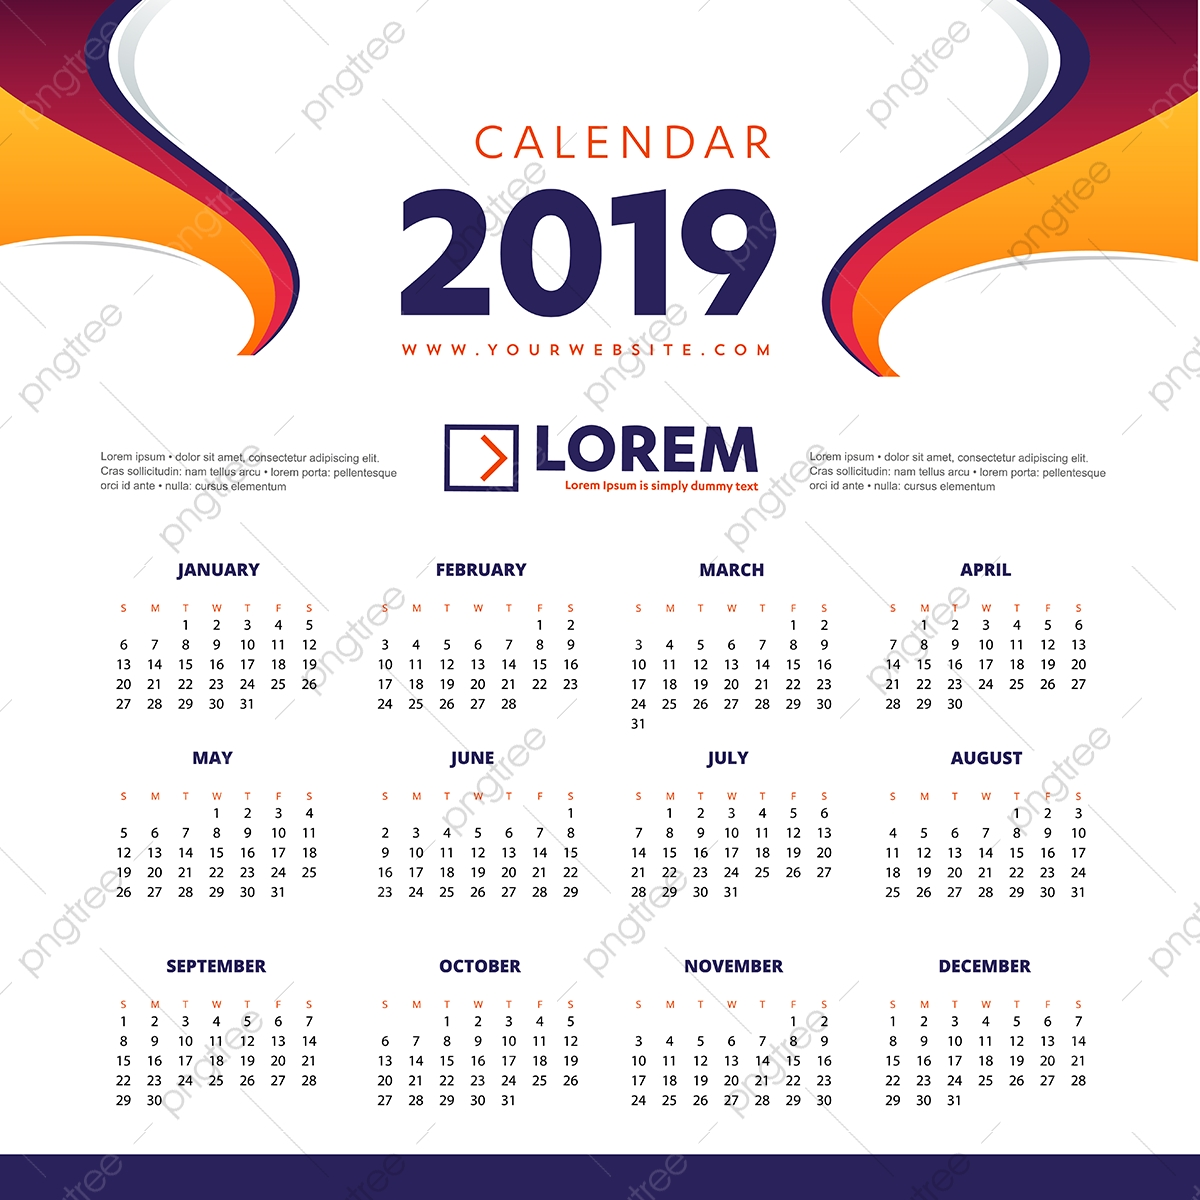 Calendrier 2019 Vectoriel.Calendrier 2019 Colore Bureau Bureau Modele An Illustration